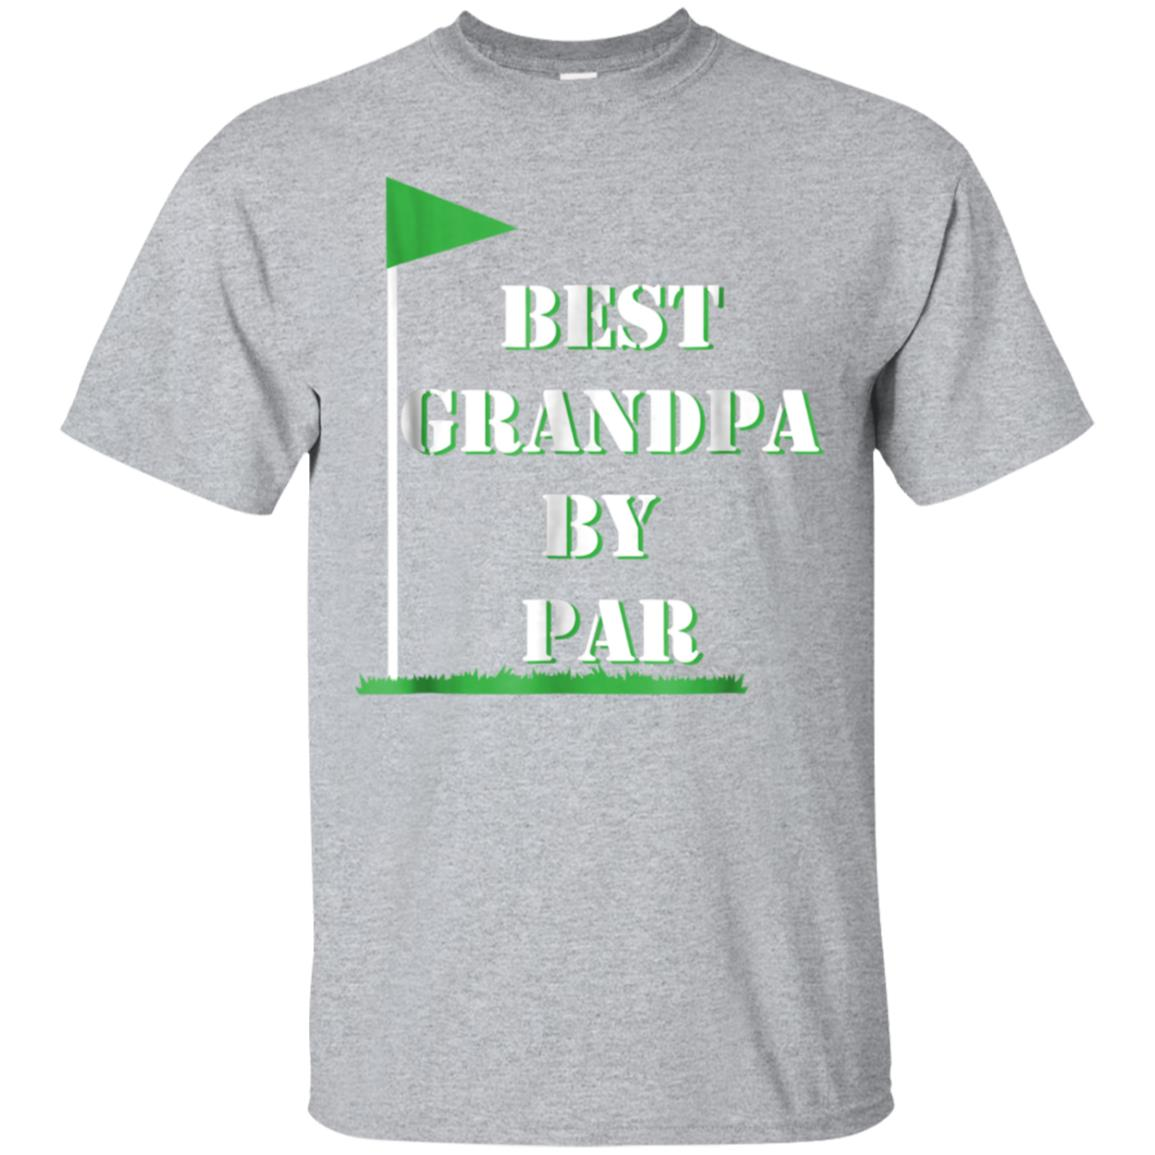 5ab50892 Awesome mens father's day best grandpa by par funny golf gift shirt -  99promocode